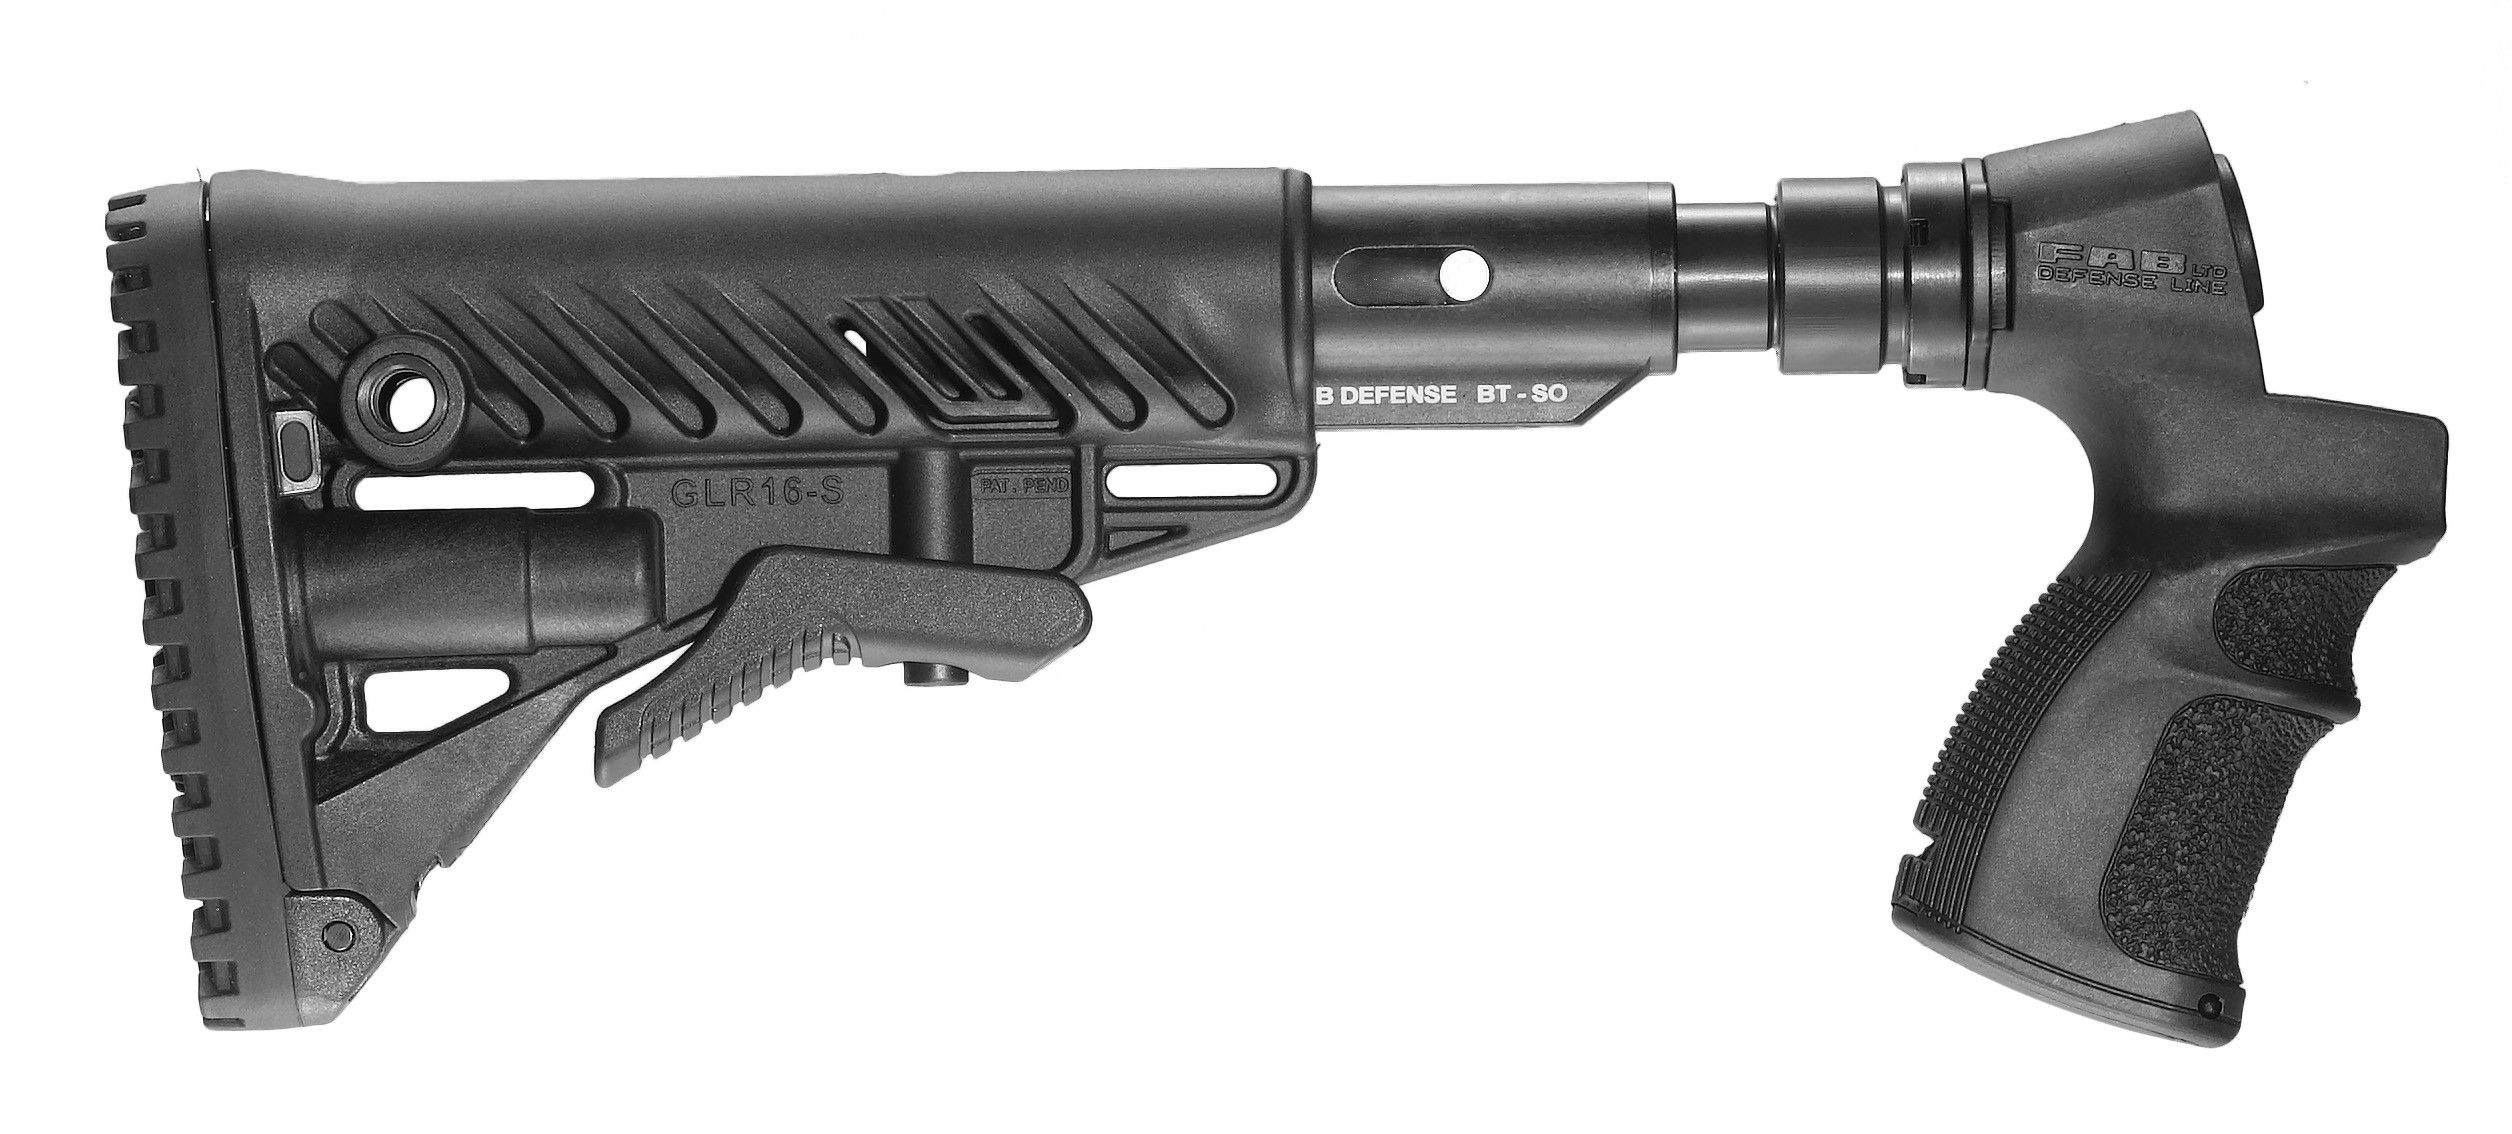 Ati scorpion mossberg 500 price - Recoil Reducing Collapsible Buttstock For Mossberg 500 590